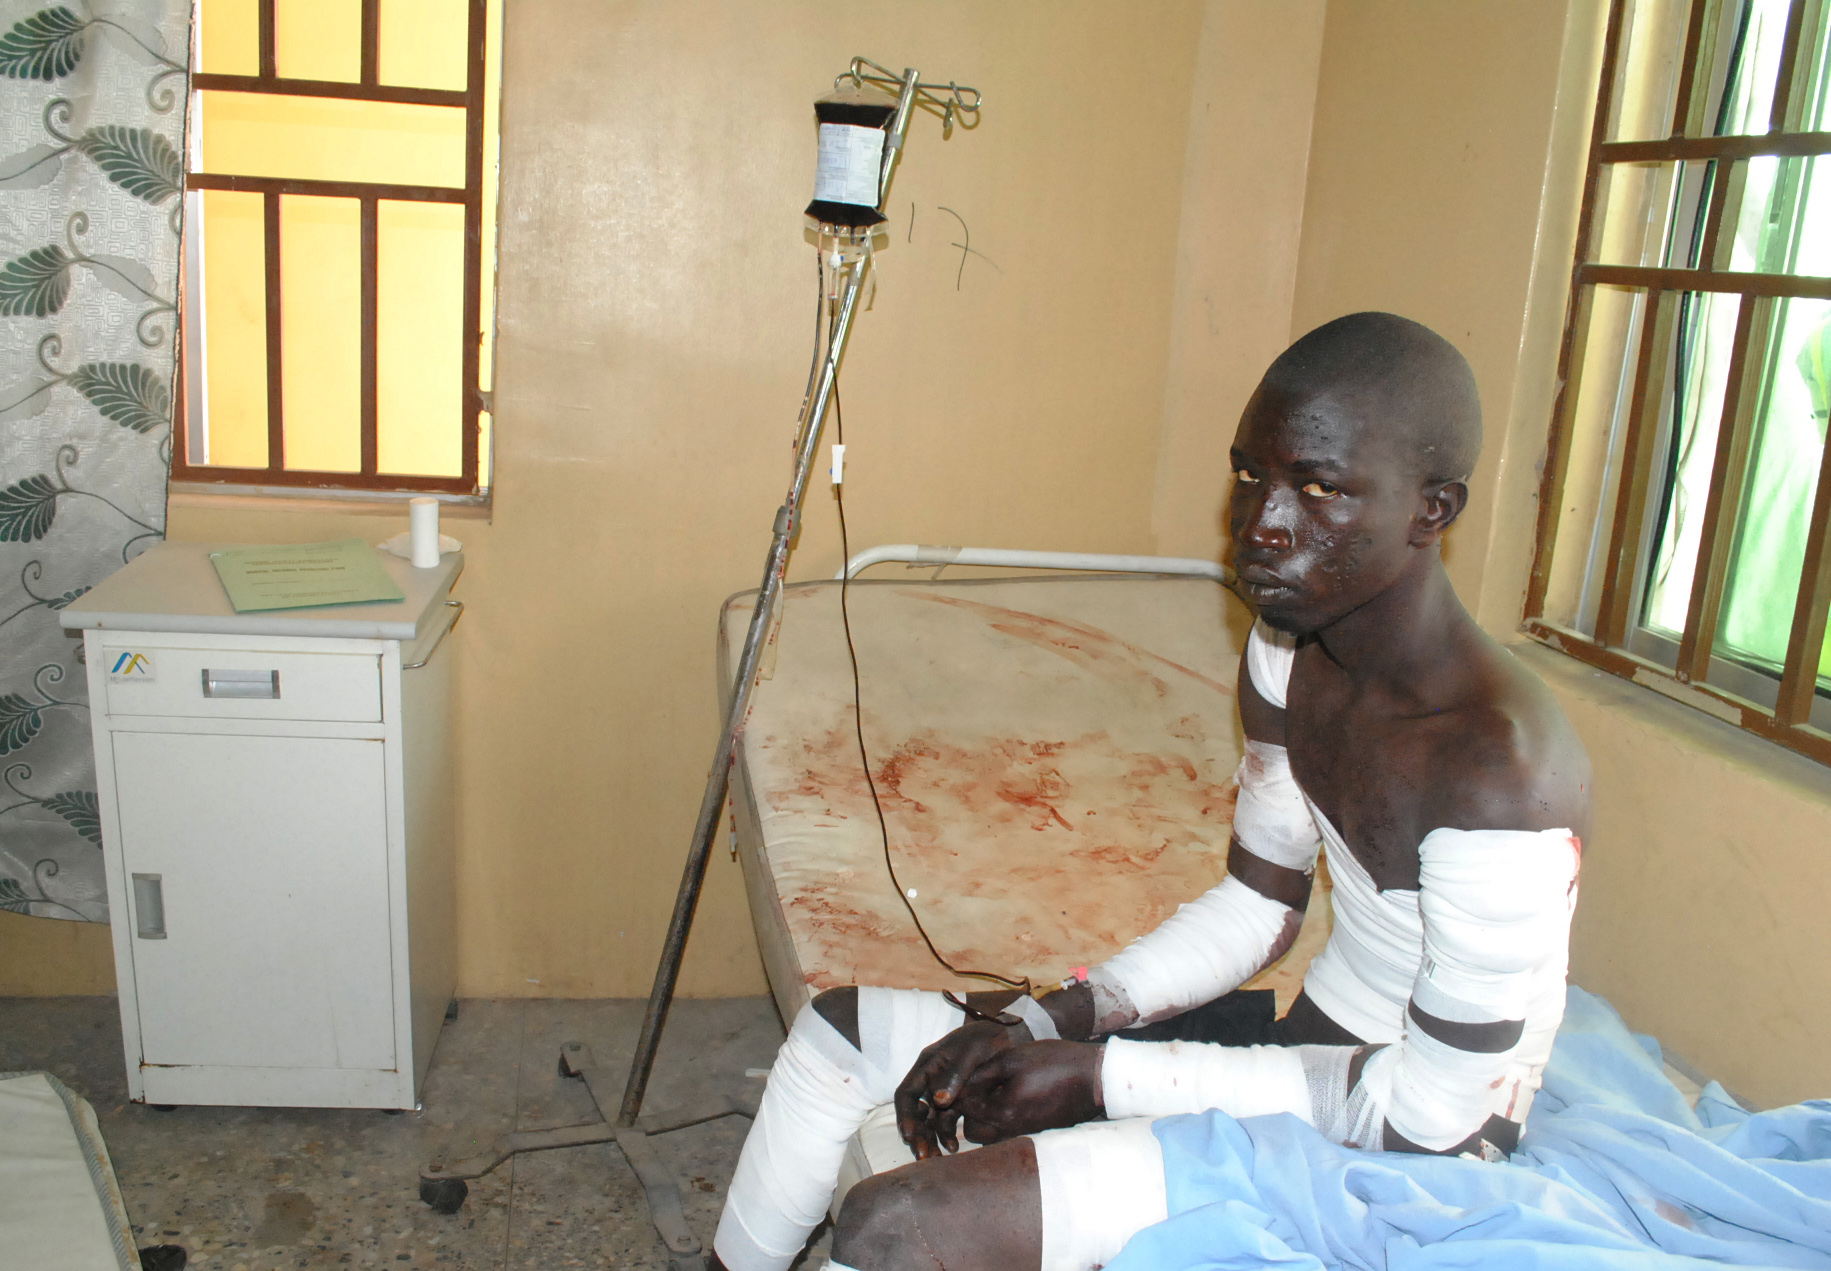 A victim of a Boko  Haram attack receives treatment at a hospital, in Maiduguri, Nigeria Monday, Dec. 28, 2015. Boko Haram Islamic extremists struck the northeastern Nigerian city of Maiduguri for the first time in months Monday with rocket-propelled grenades and multiple suicide bombers, witnesses said. At least 50 people were killed and the death toll could go higher. (AP Photo/Jossy Ola)